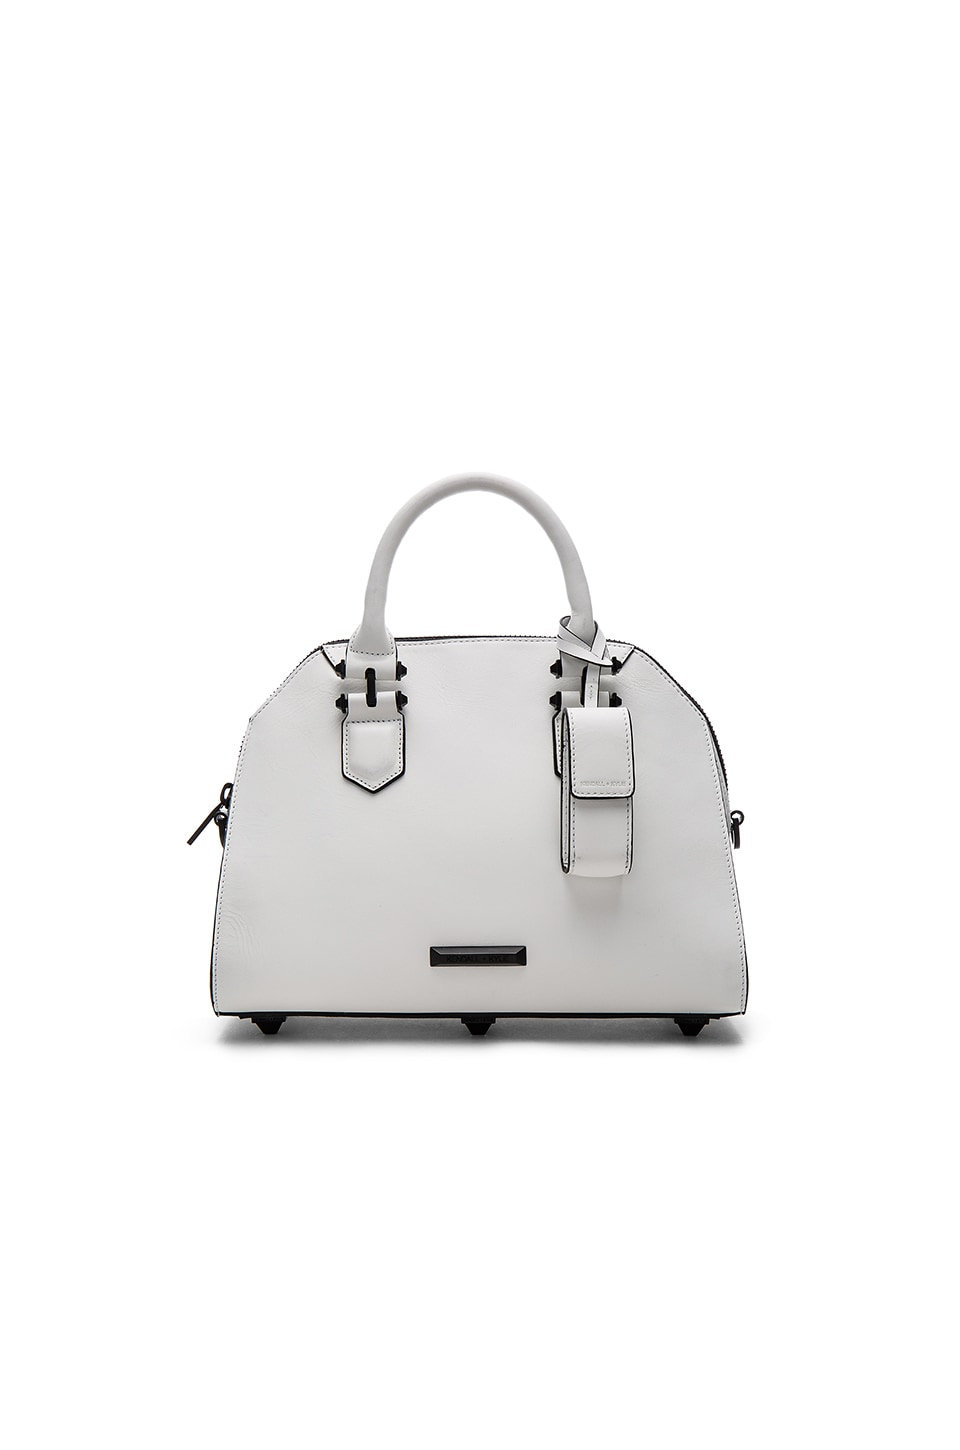 KENDALL + KYLIE Holly Satchel in White Smooth Leather